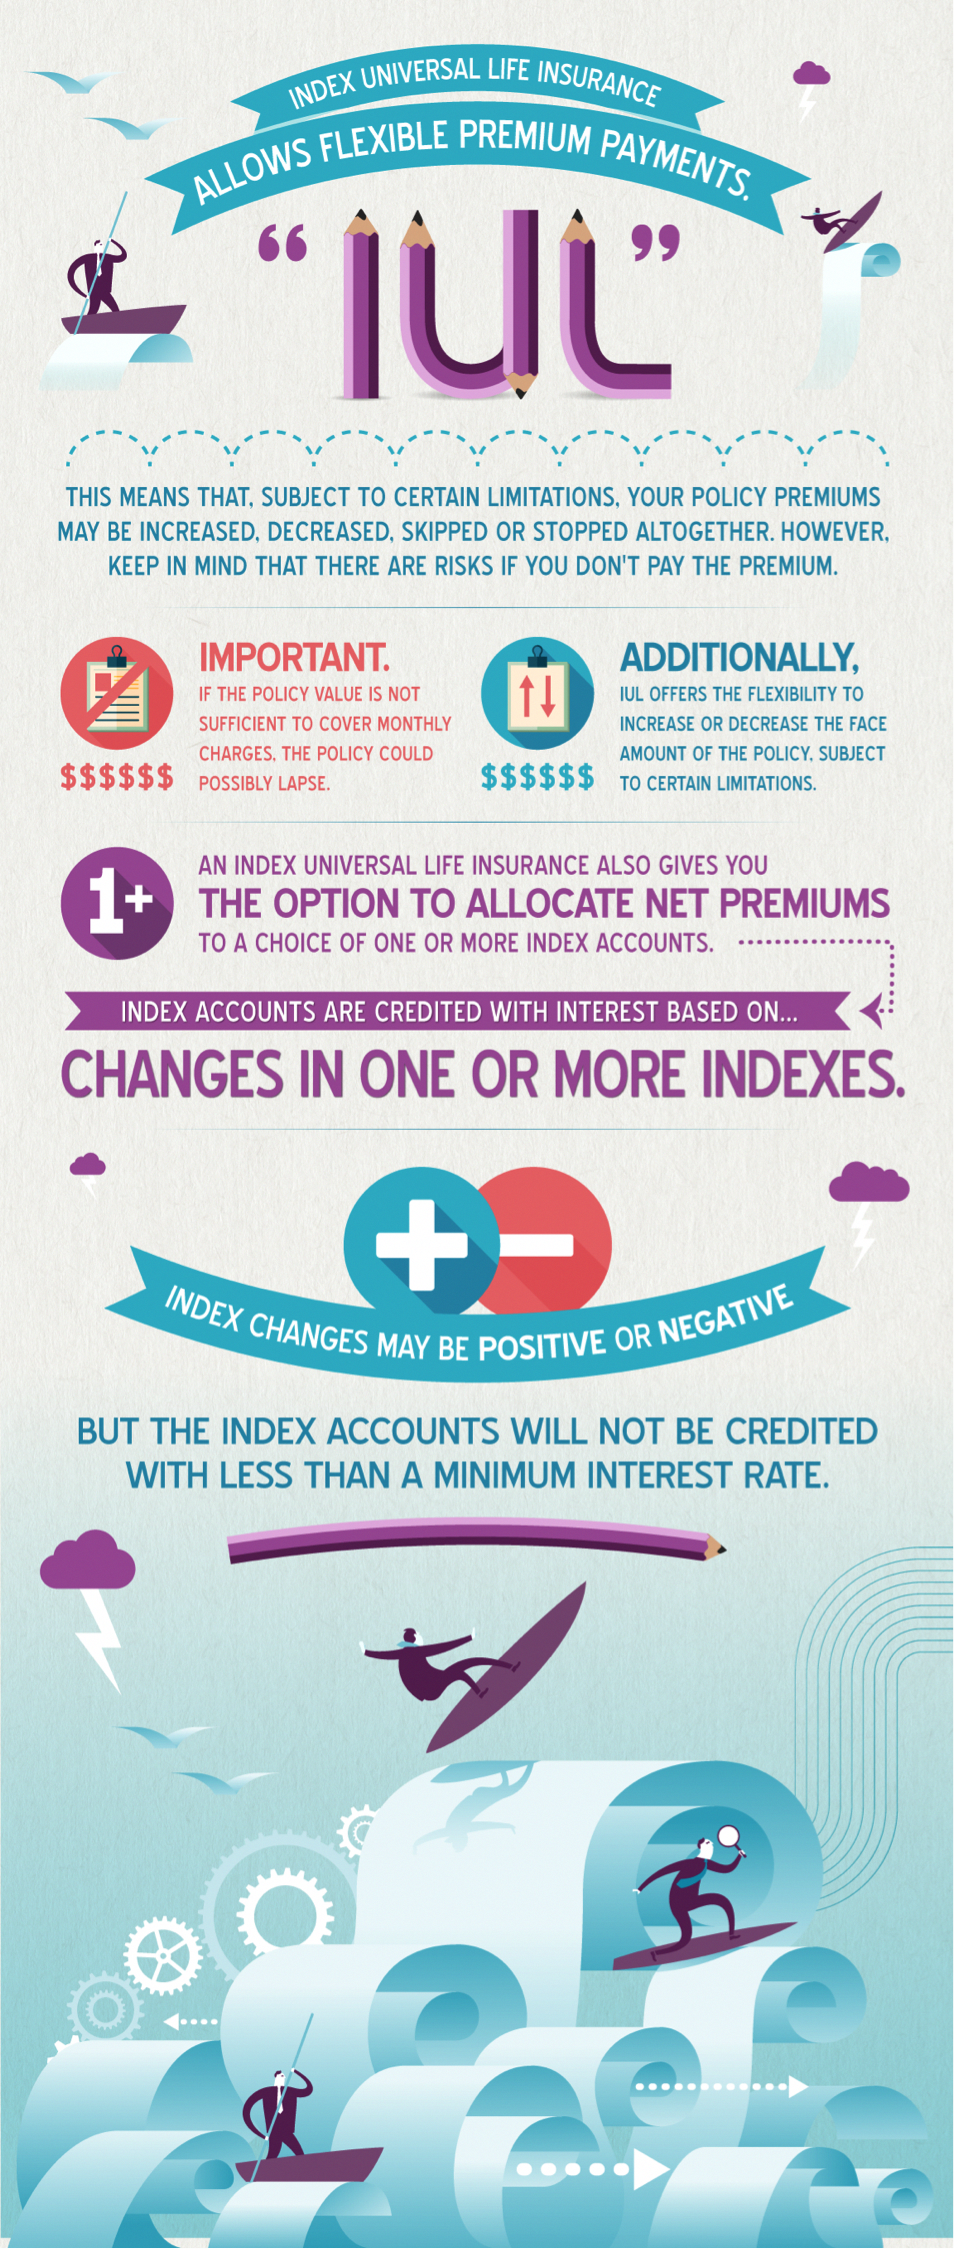 Index Universal Life Insurance Infographic Universallifeinsurance Universal Life Insurance Life Insurance Facts